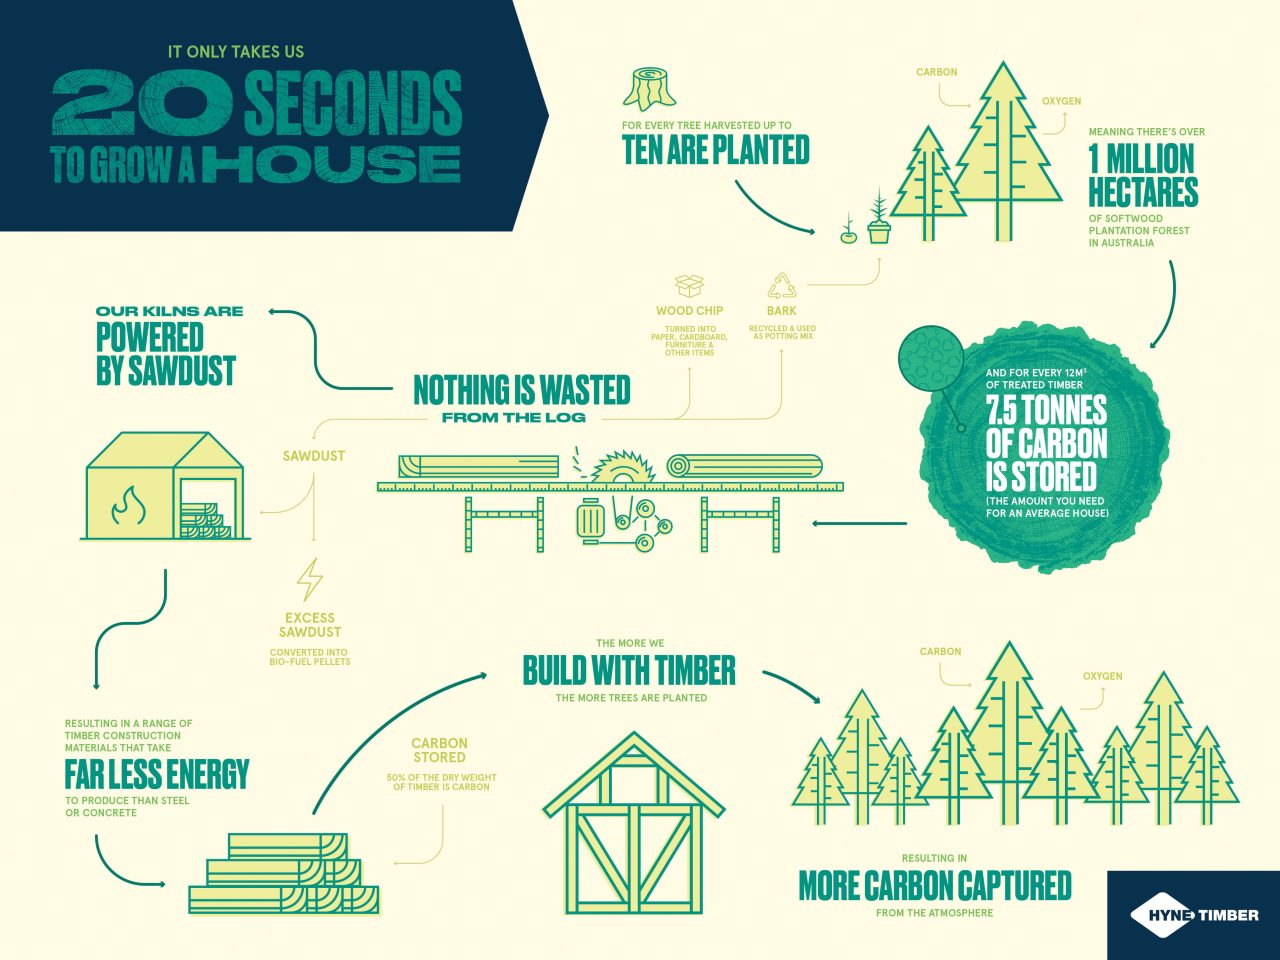 It only takes us 20 Seconds to grow a house